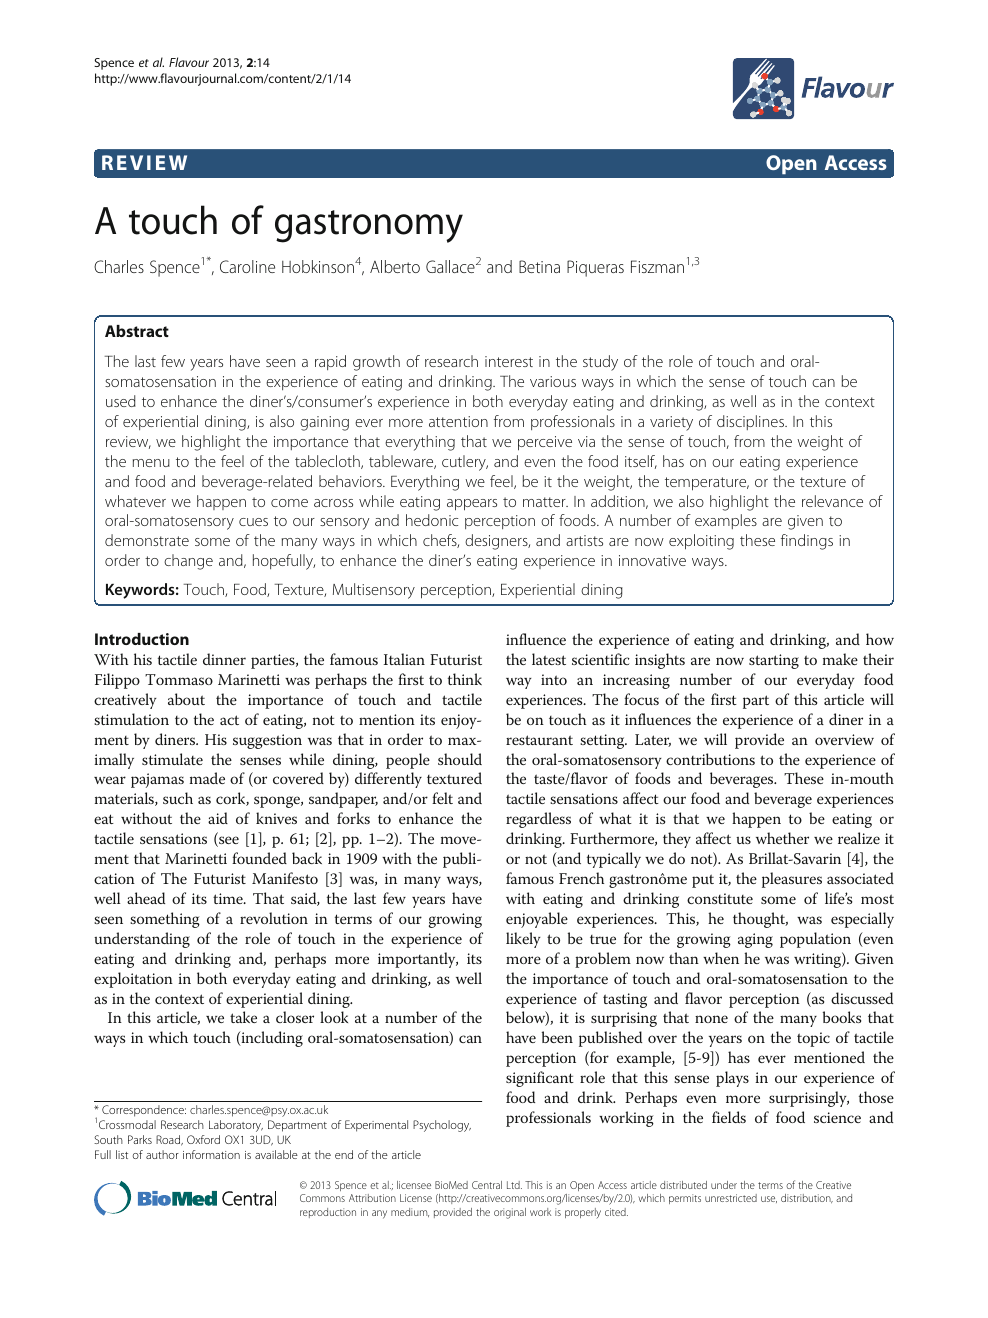 A touch of gastronomy – topic of research paper in Psychology